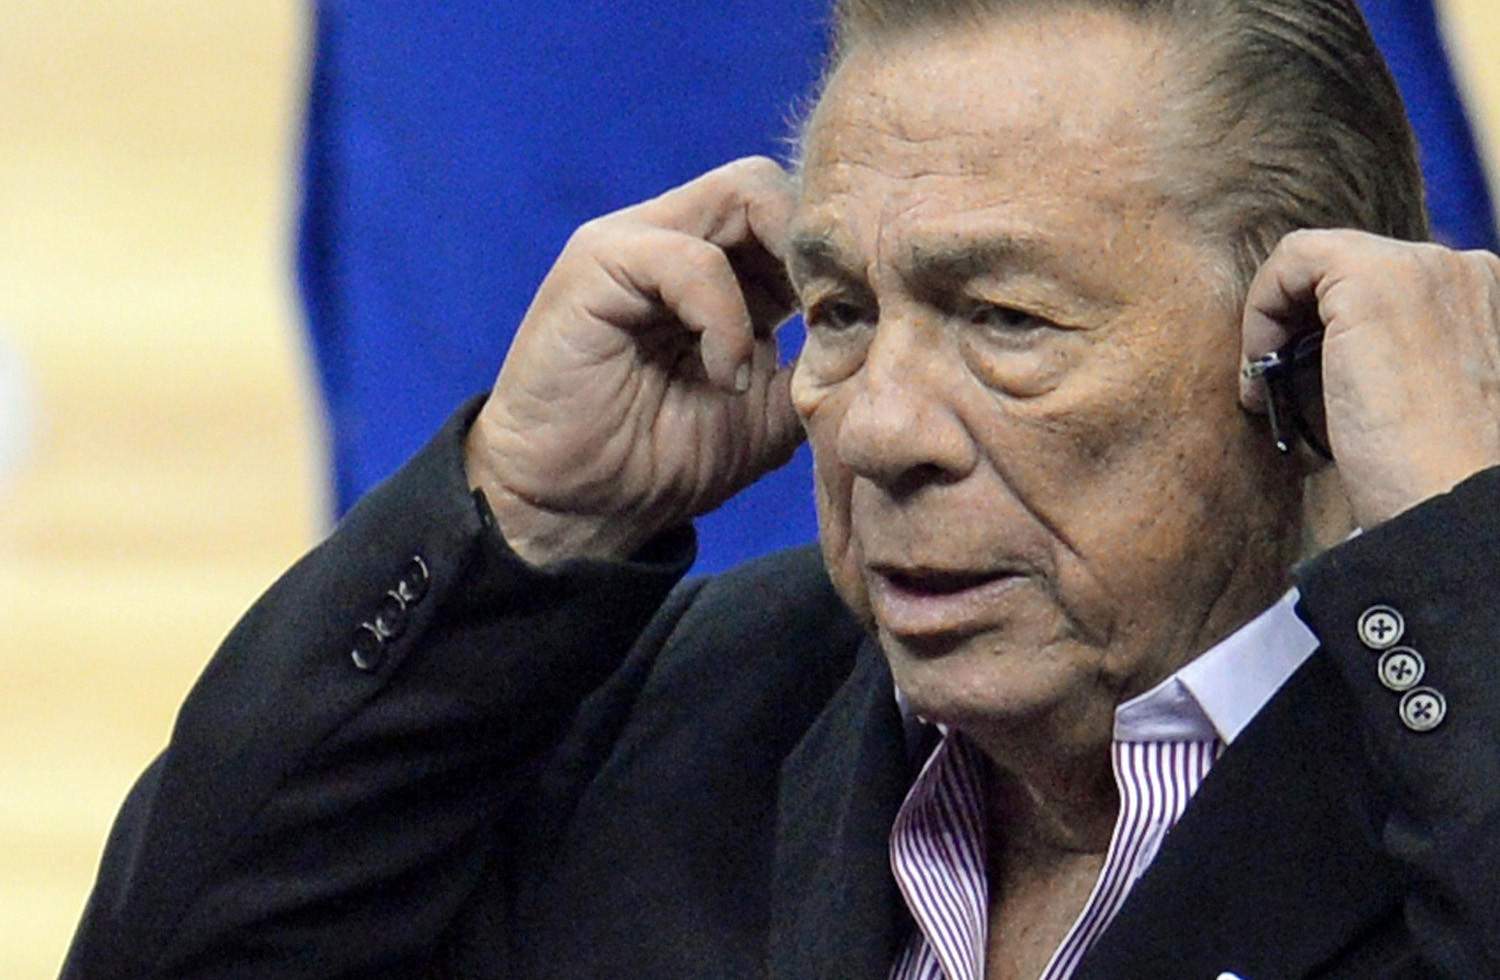 Los Angeles Clippers owner Donald Sterling attends the NBA playoff game between the Clippers and the Golden State Warriors last week.